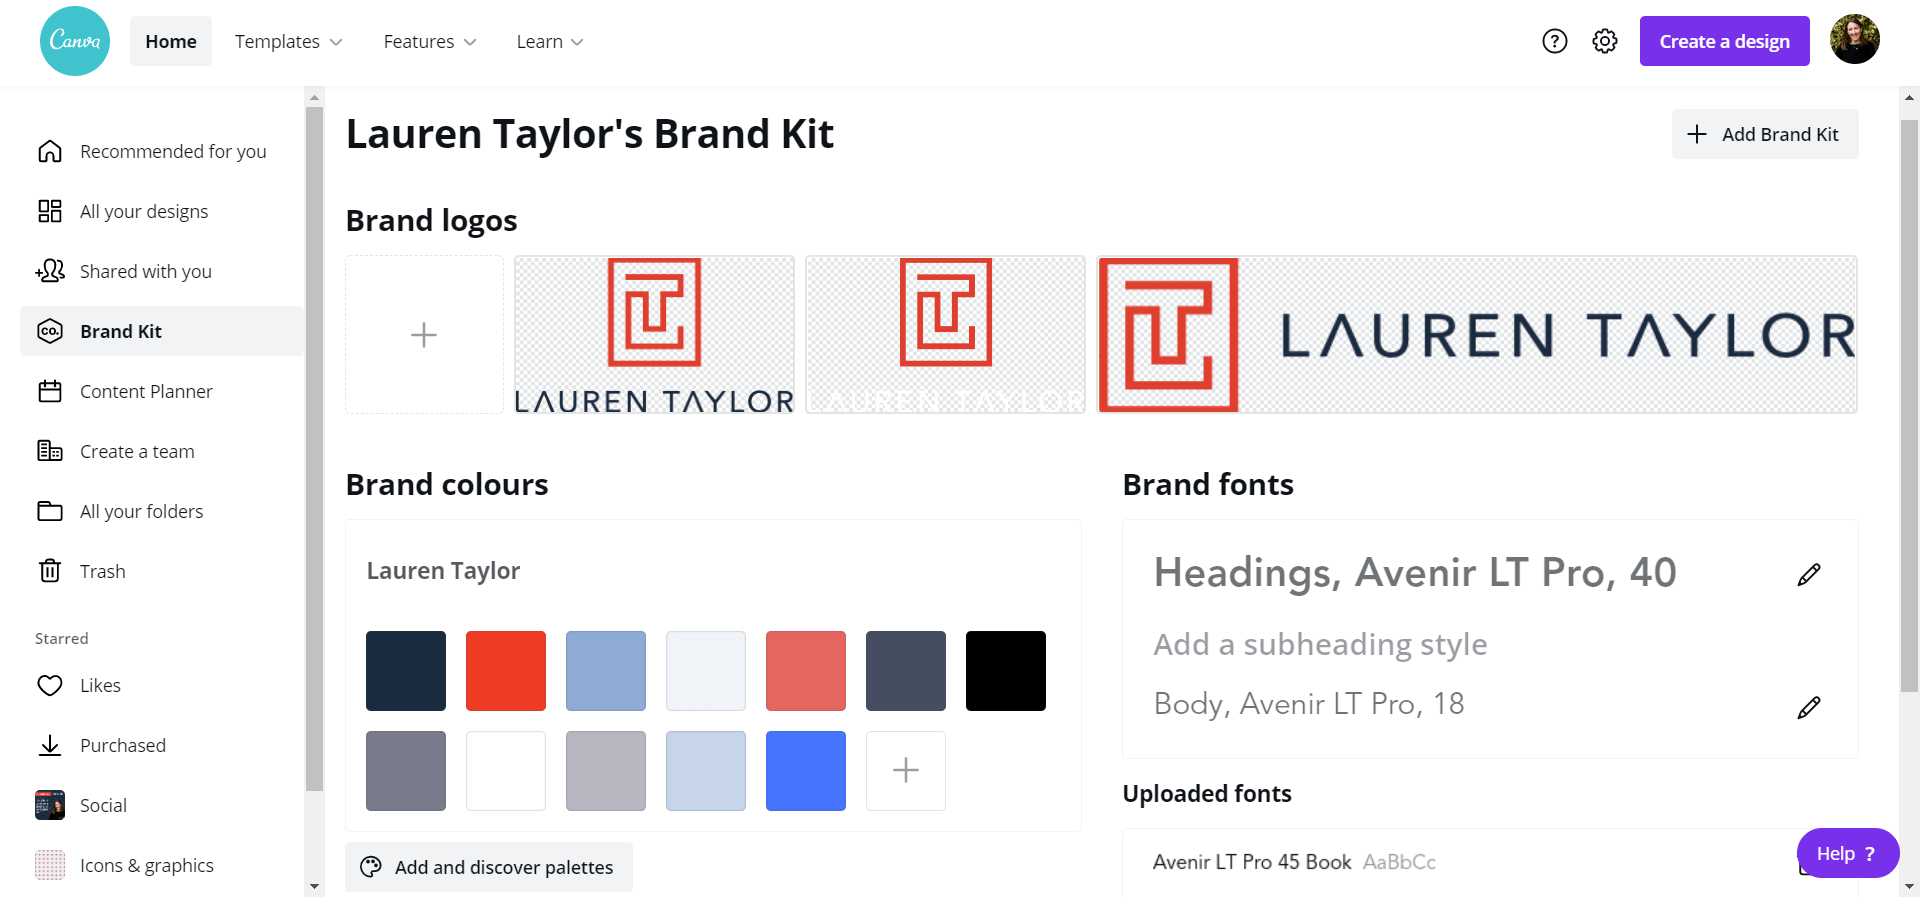 Canva's Brand Kit with red, blue and white Lauren Taylor logos at the top, a selection of brand colours on the left and brand fonts and styles on the right.